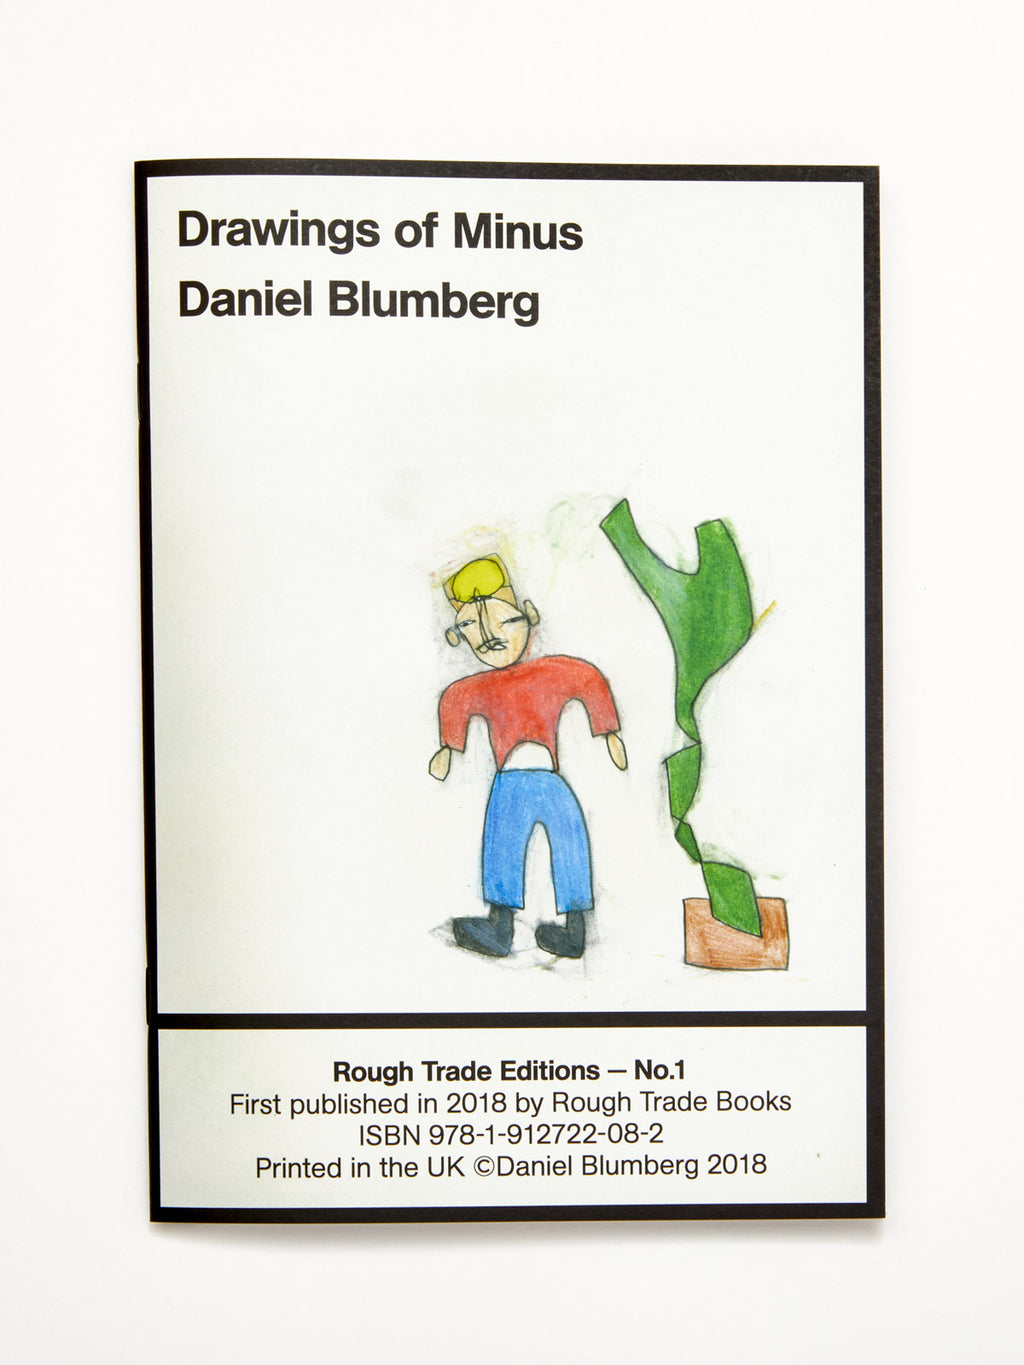 Daniel Blumberg - Drawings From Minus